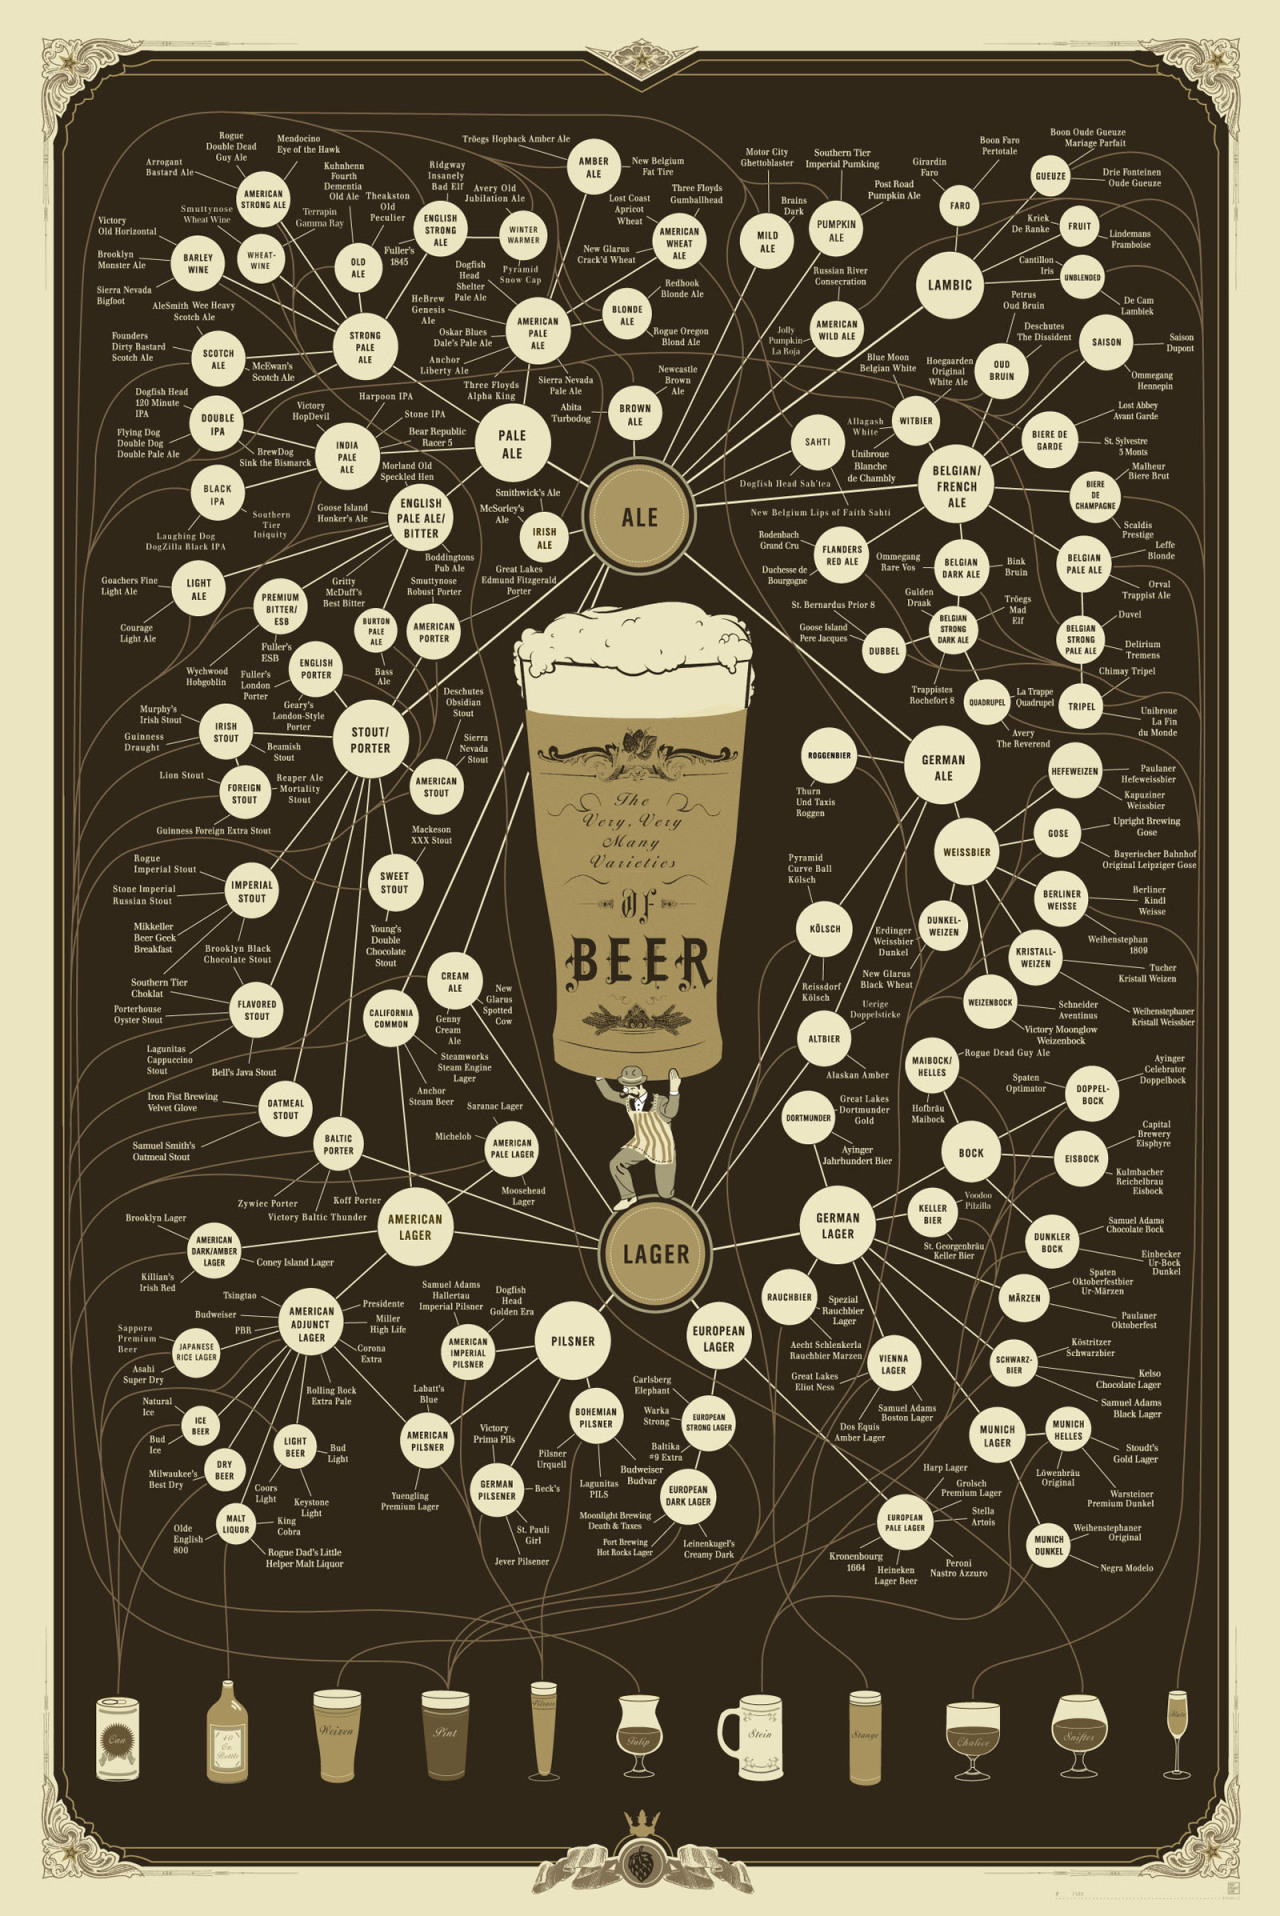 jxd1689:  The Very, Very Many Varieties of Beer [Infographic]  from Daily Infographic by Eric Lyday   [via]